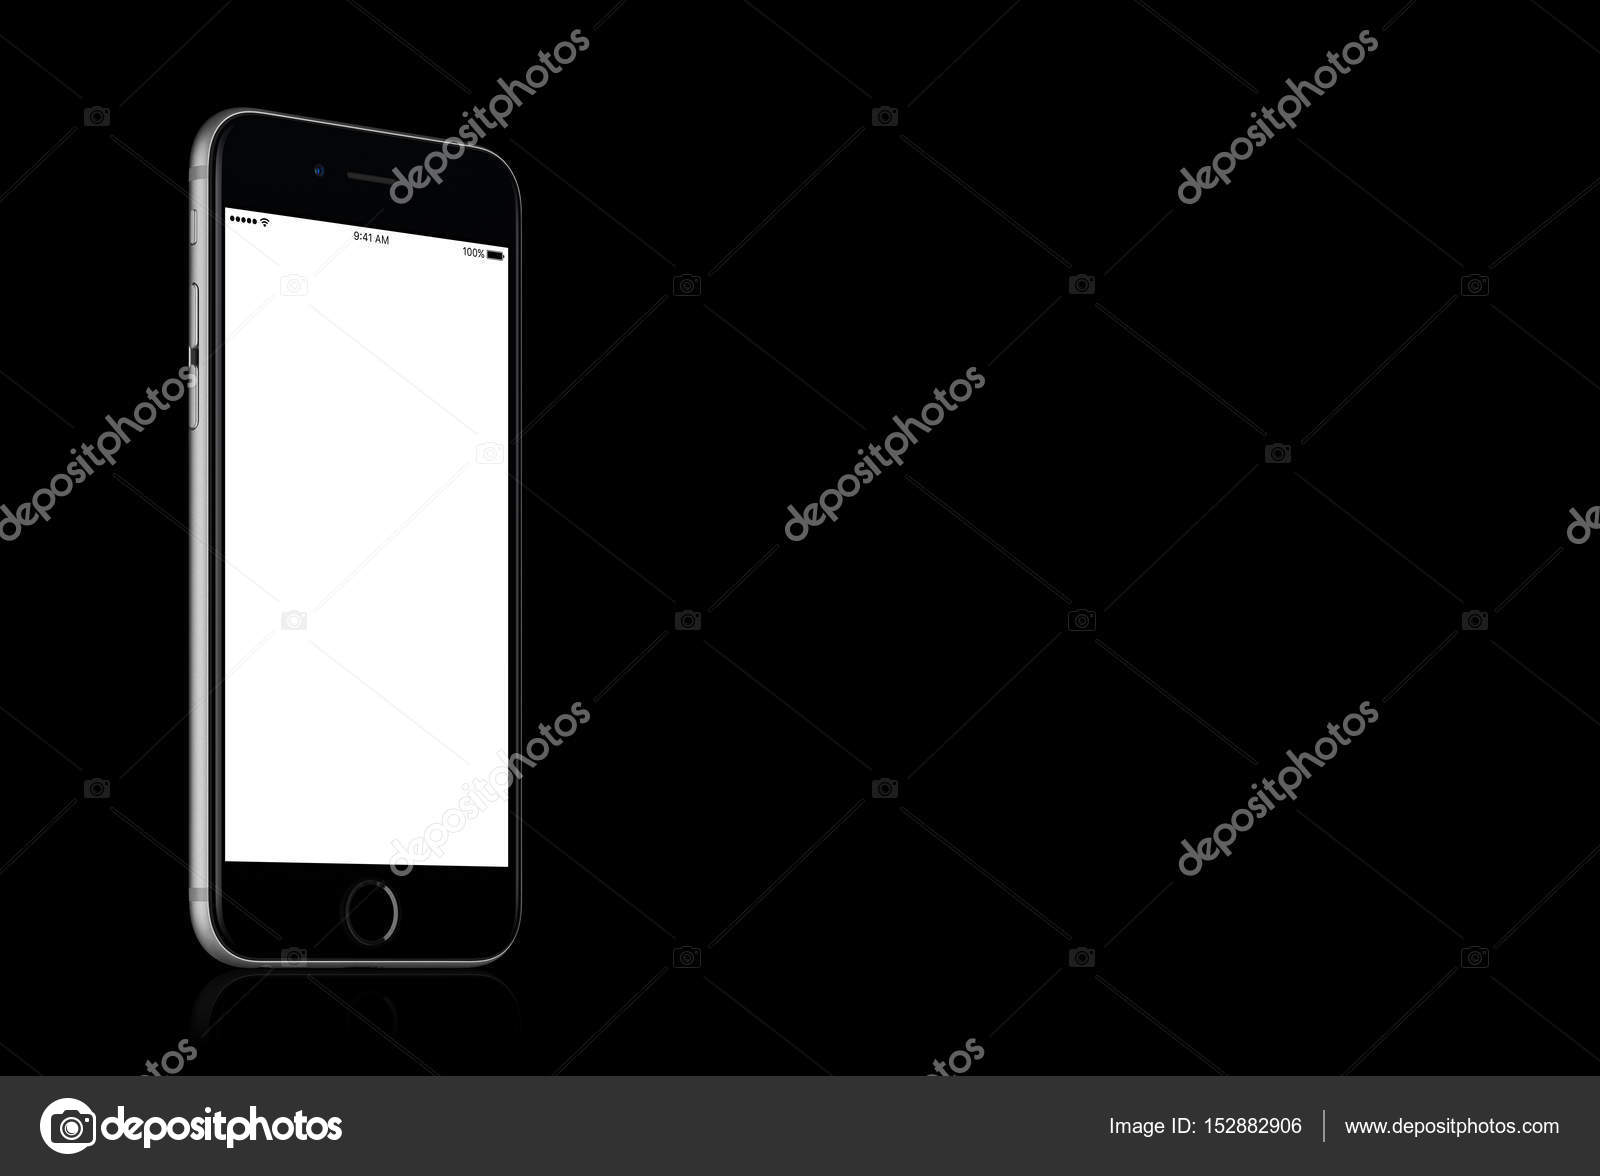 Space Gray Apple iPhone 7 mockup on solid black background